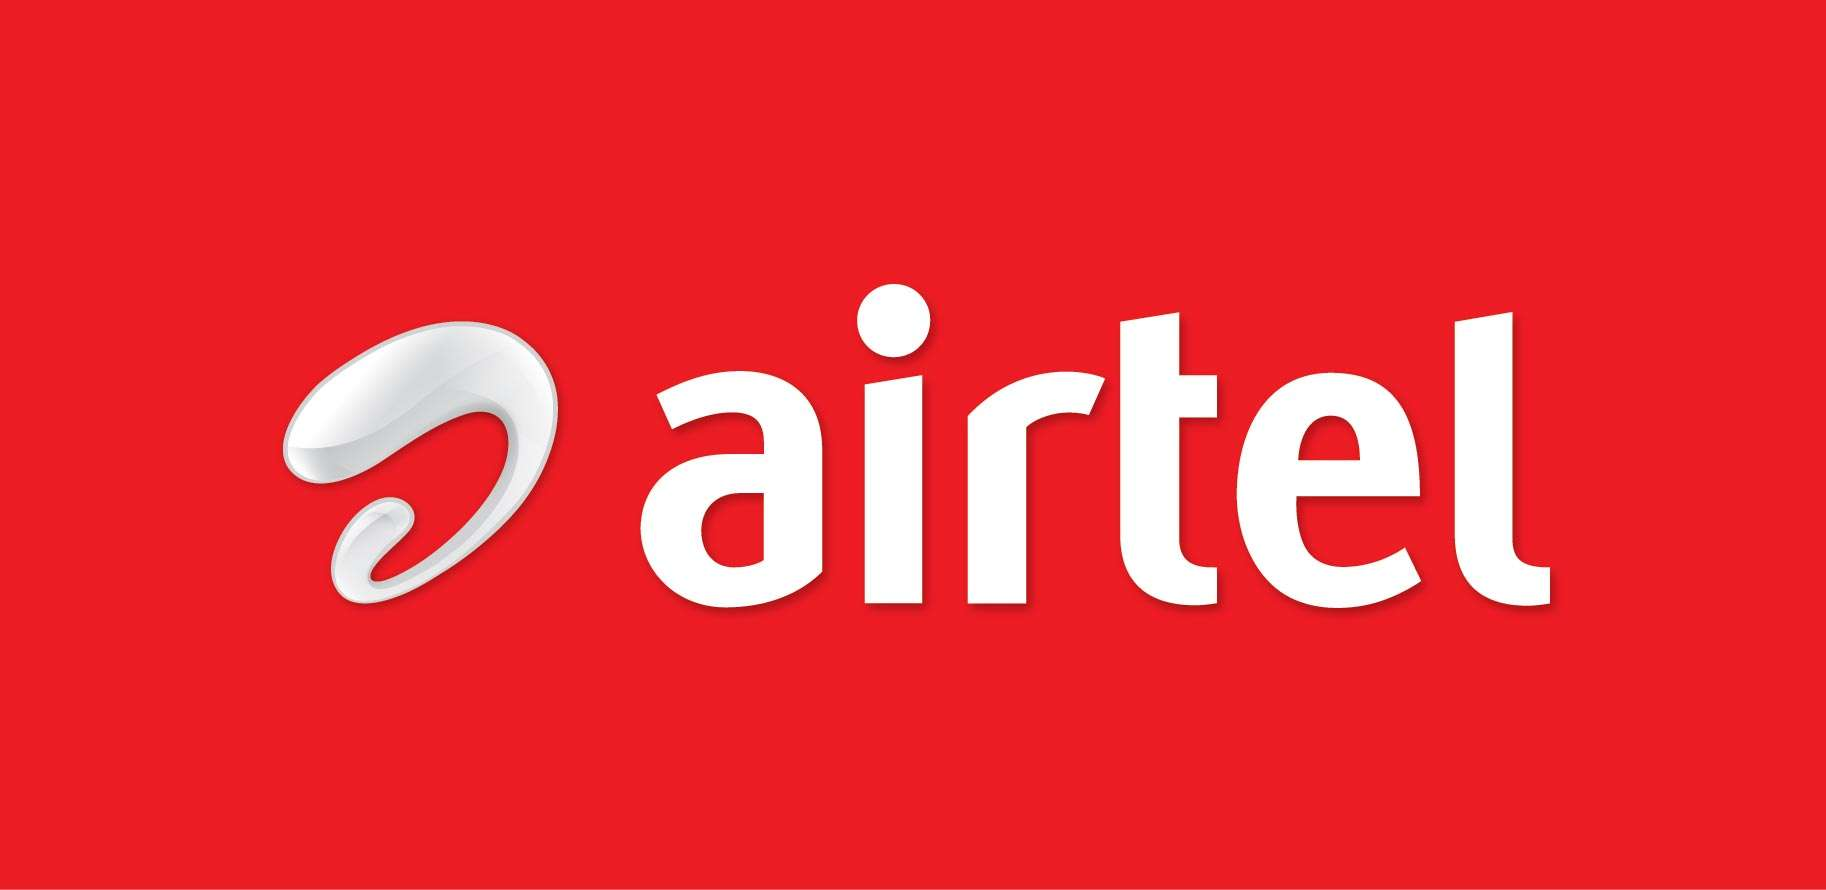 Airtel Monsoon Surprise offer u2013 Free data for 3 more months for Postpaid - Airtel Vector PNG